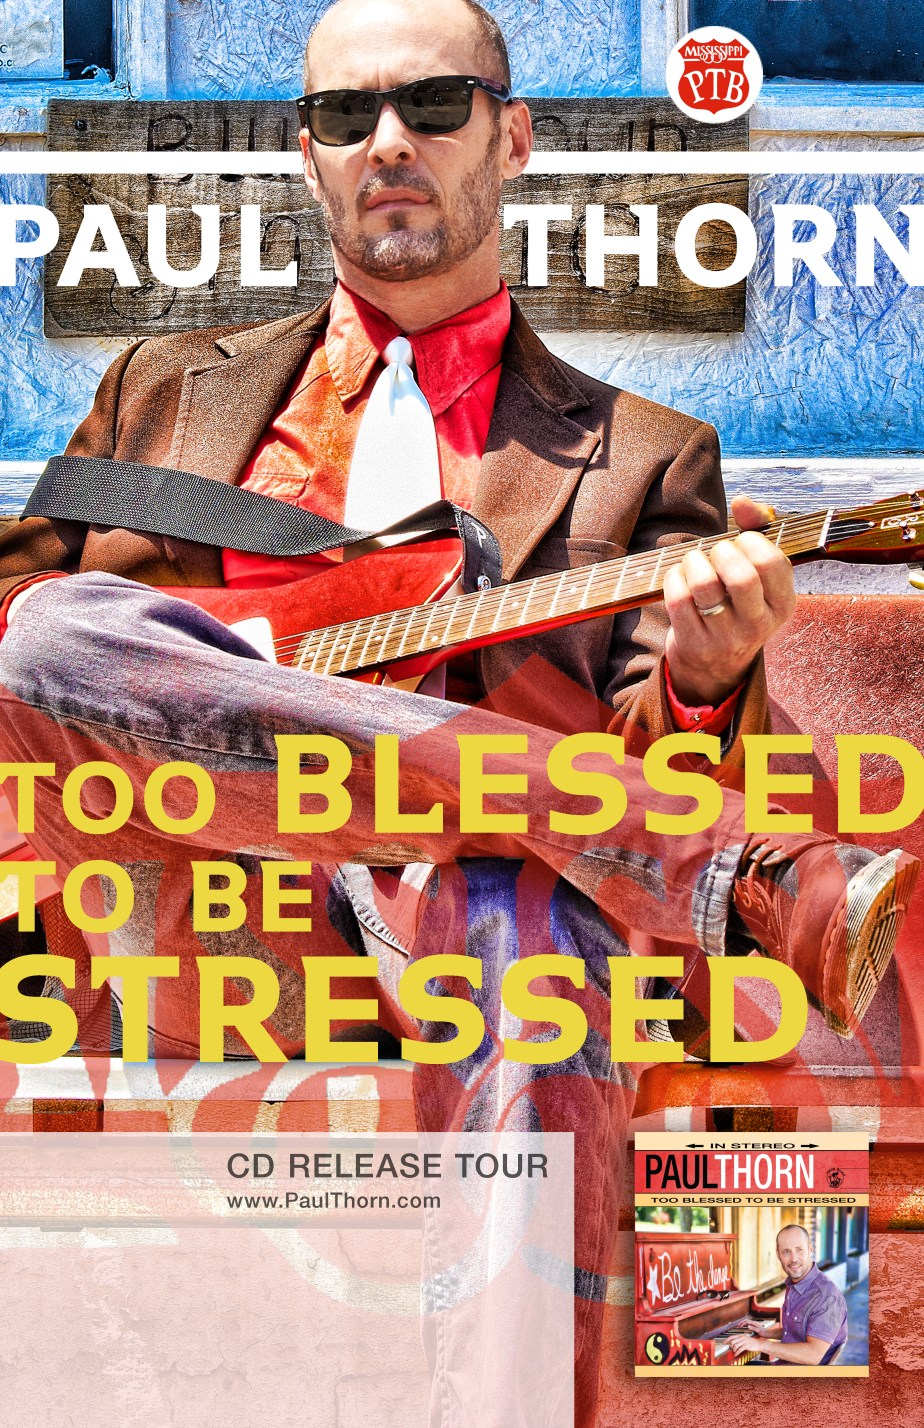 Paul Thorn - Too Blessed to Be Stressed Tour Poster